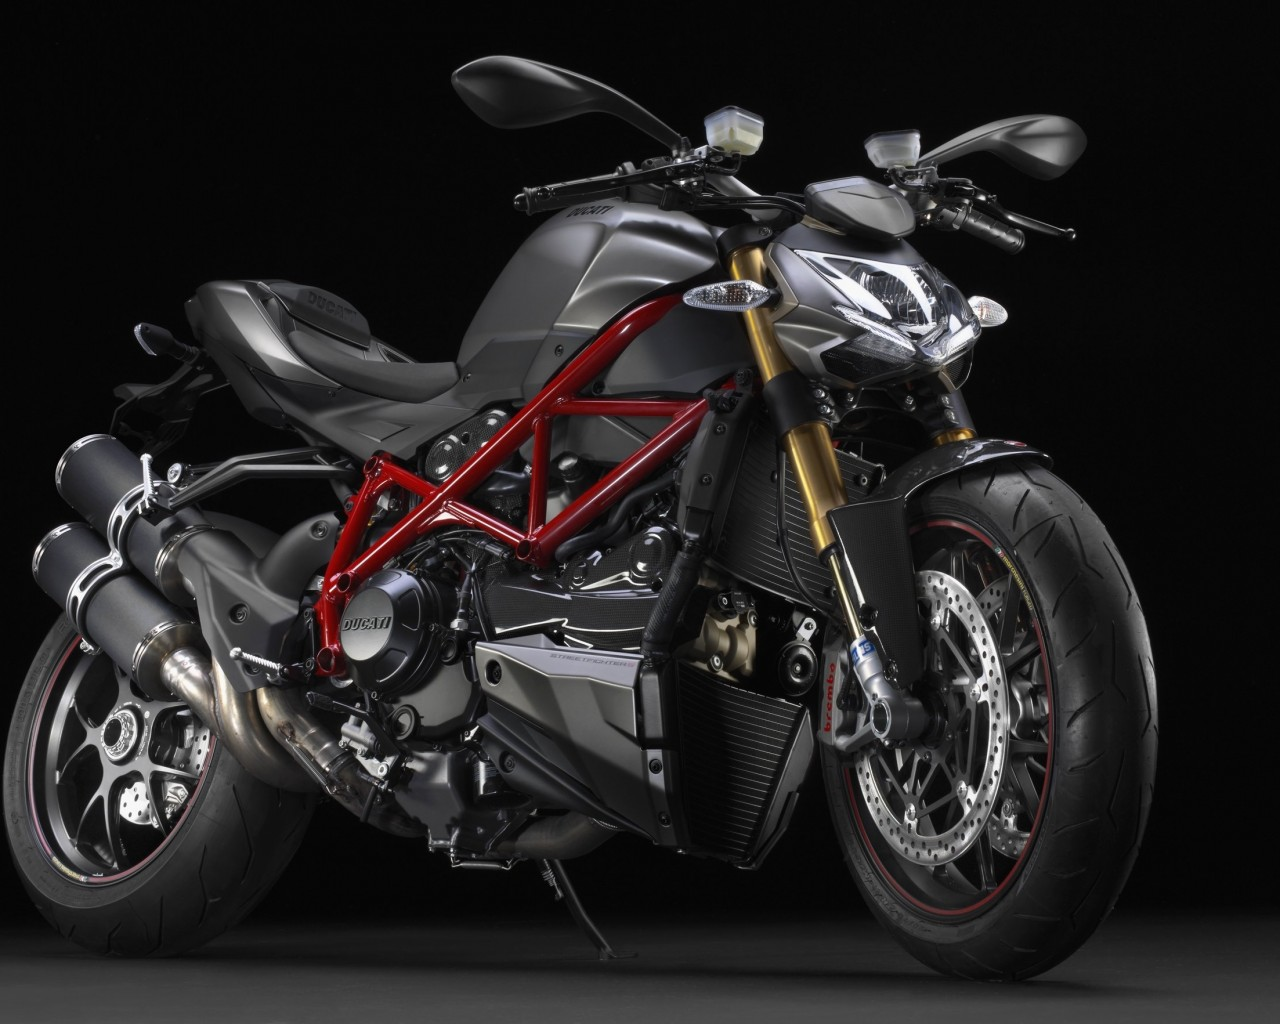 Ducati Streetfighter S Wallpaper for Desktop 1280x1024